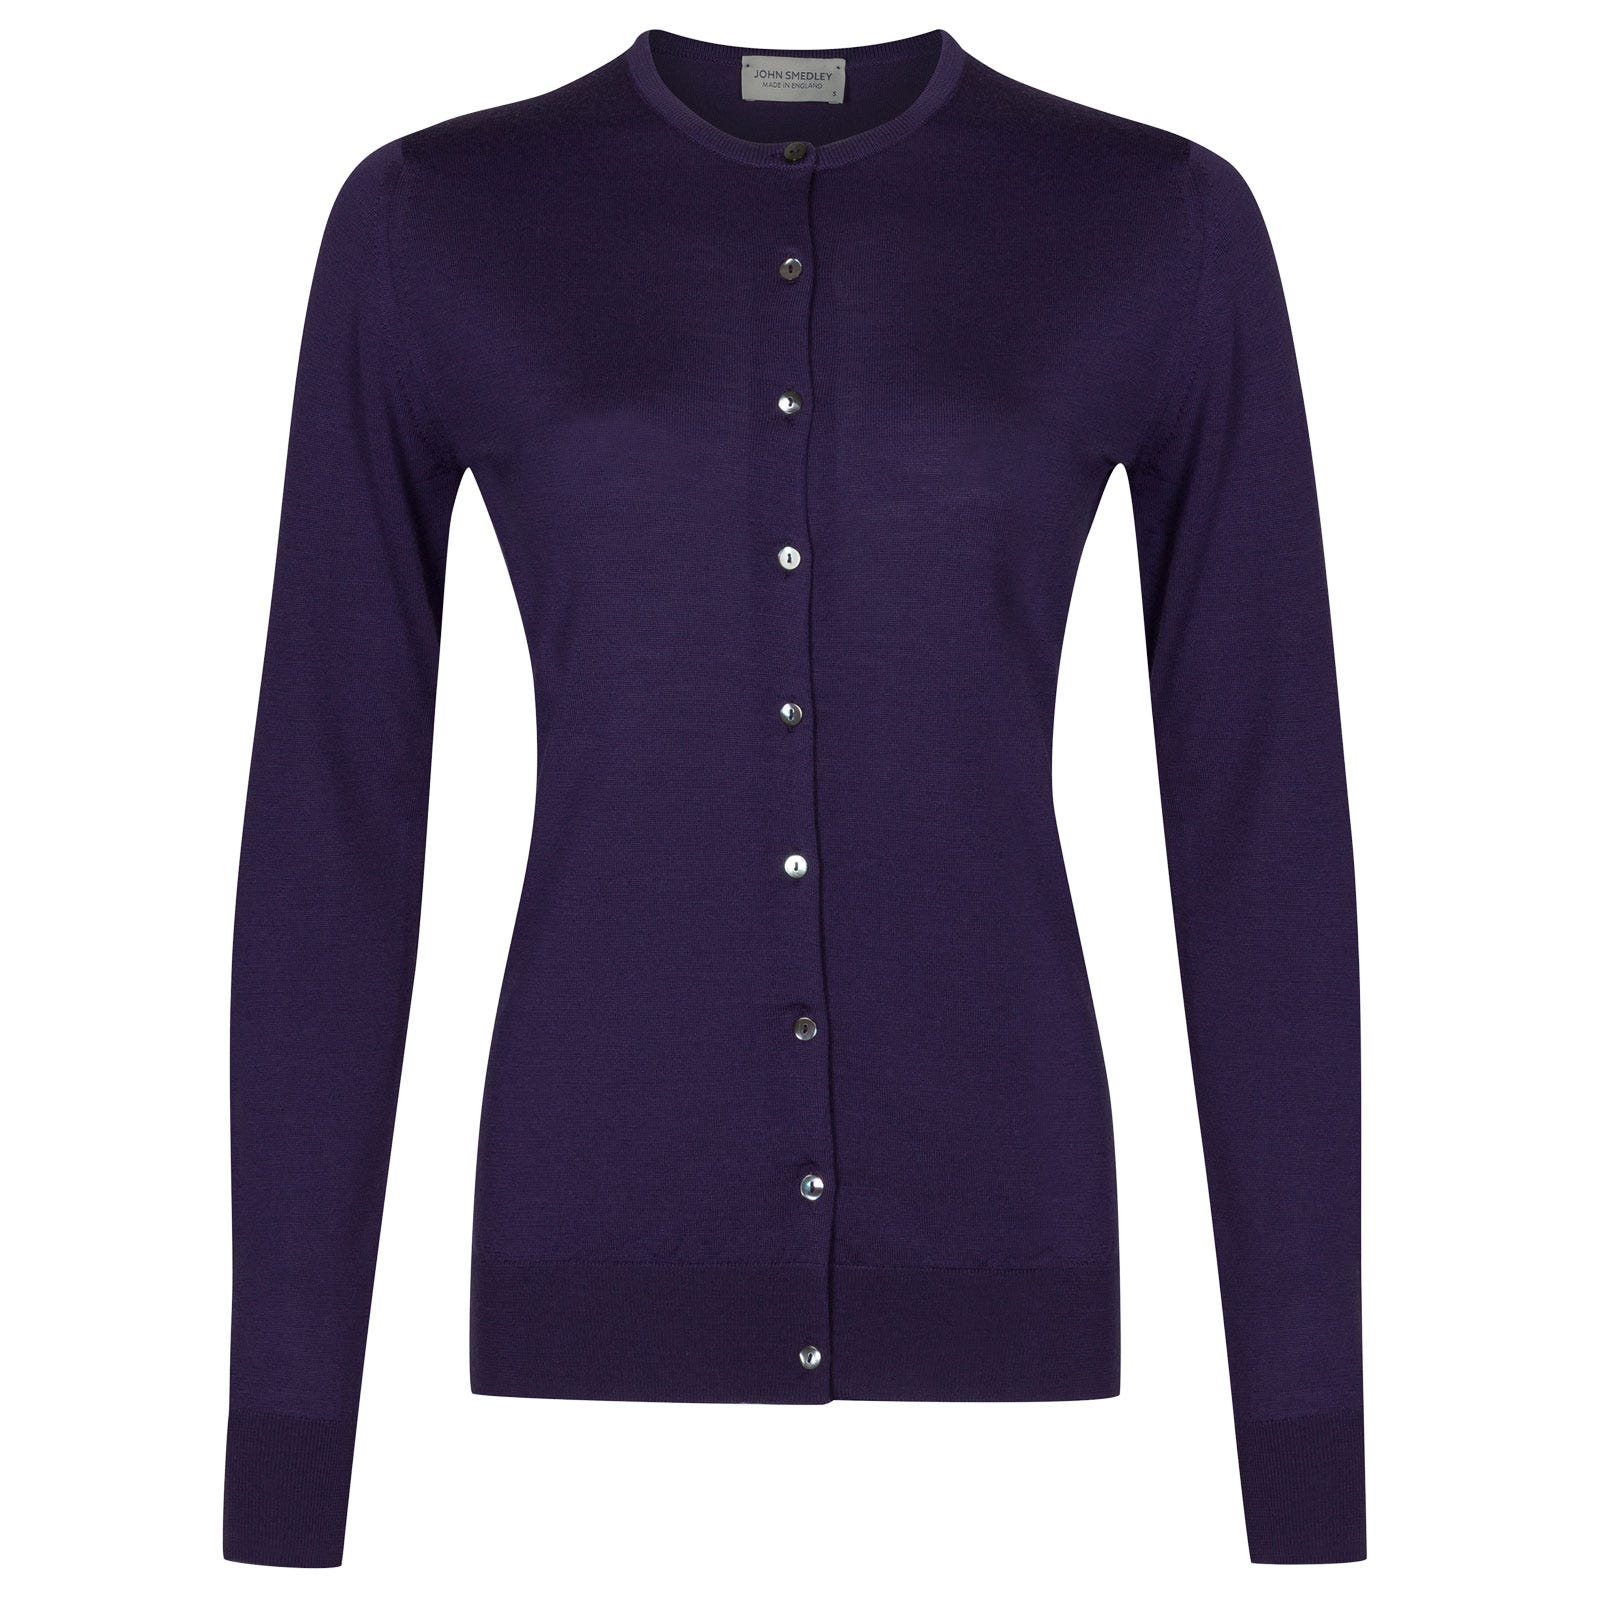 John Smedley buttercup Merino Wool Cardigan in Elderberry Purple-M